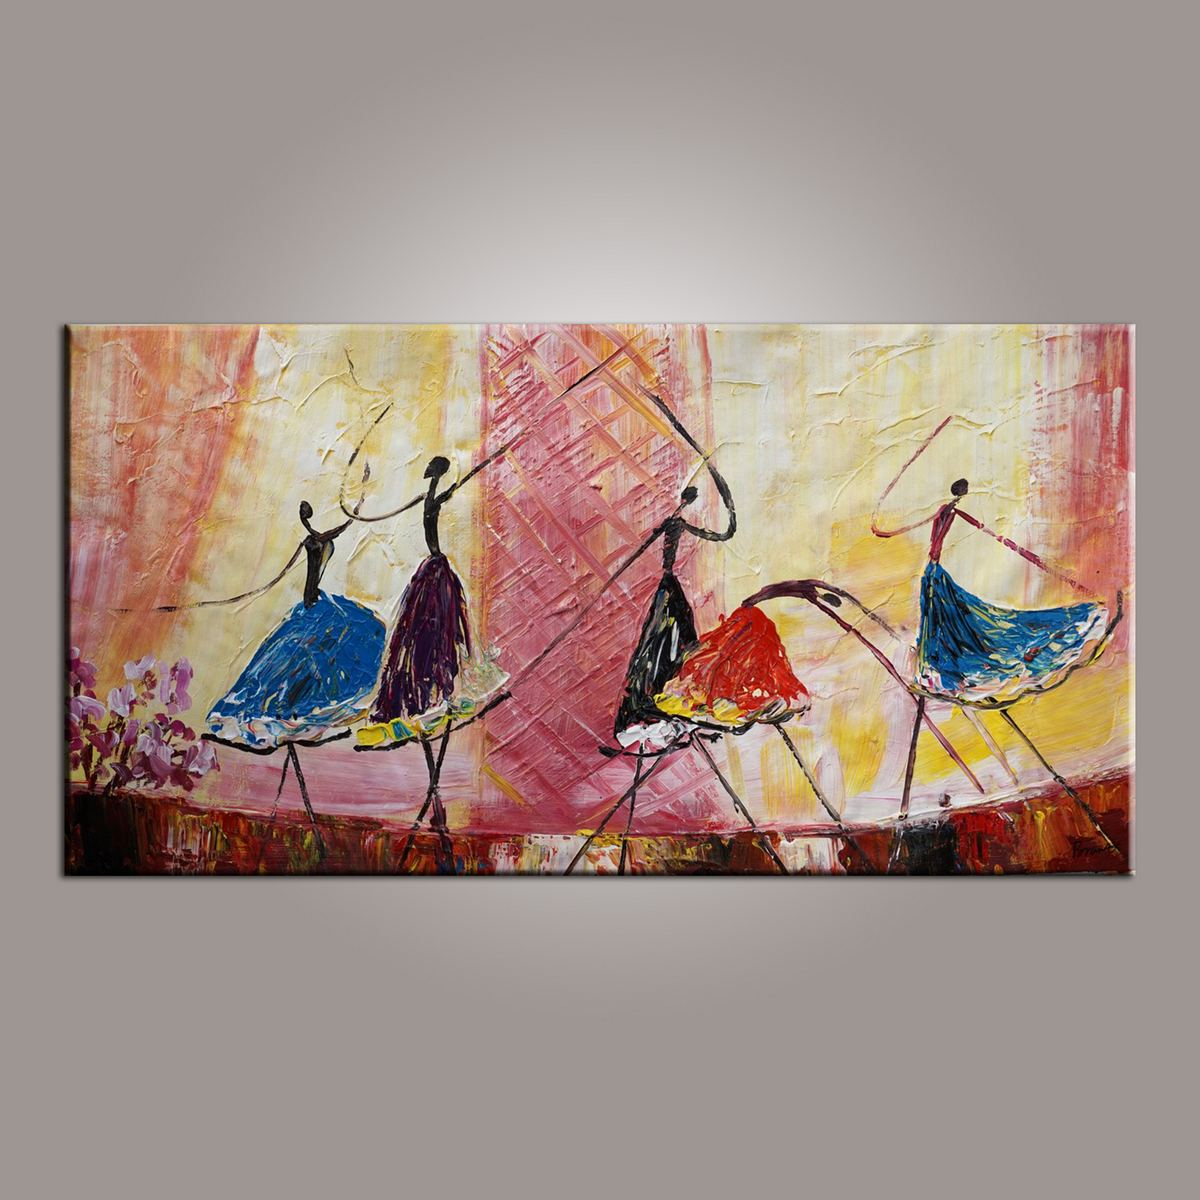 Ballet Dancer Art, Canvas Painting, Abstract Painting, Large Art, Abstract Art, Hand Painted Art, Bedroom Wall Art - Paintingforhome